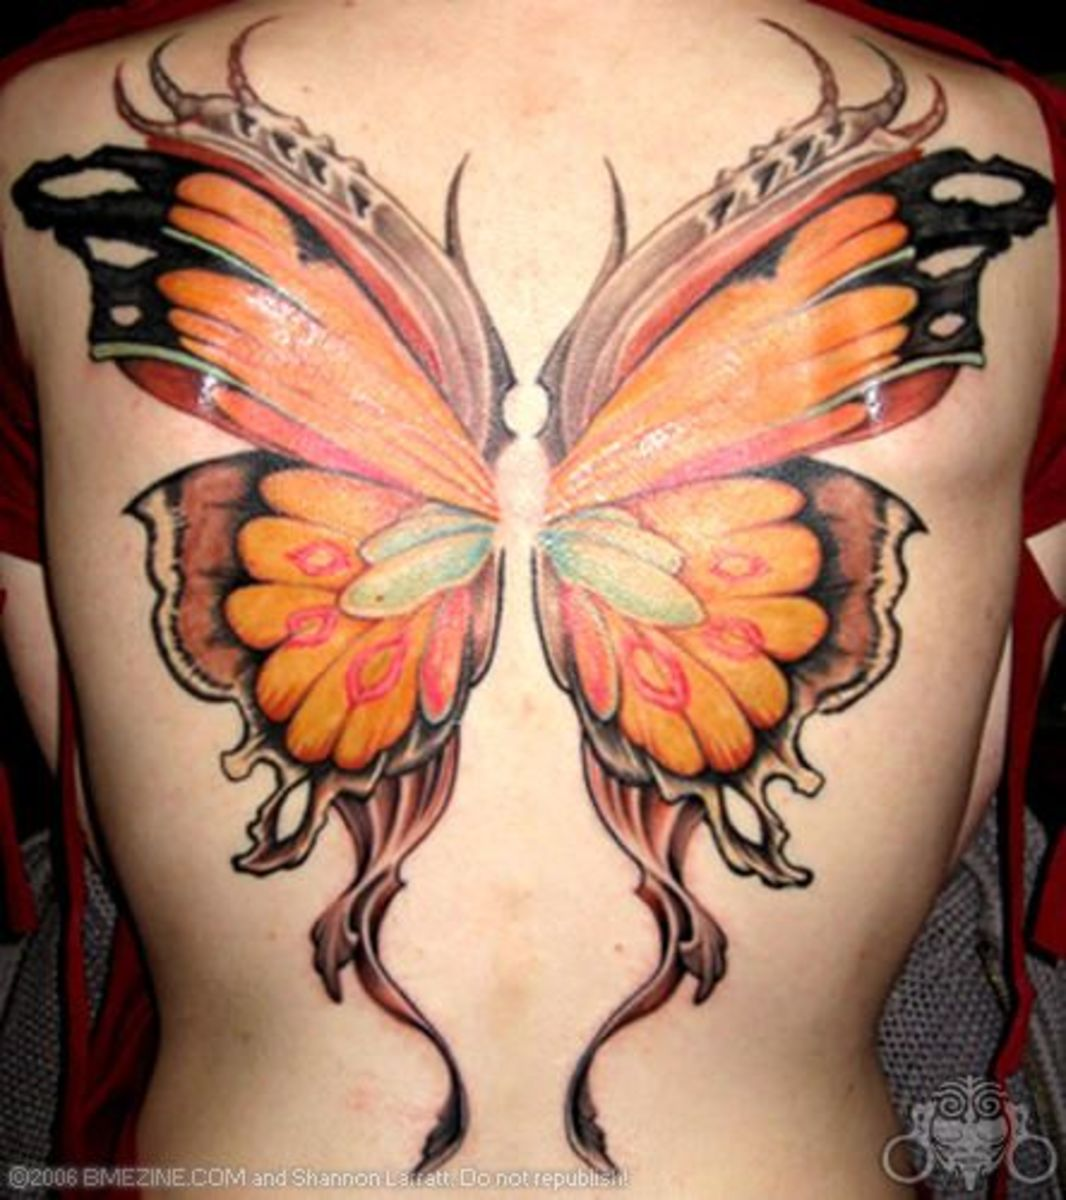 Butterfly wings tattoos are usually not what the majority of women are